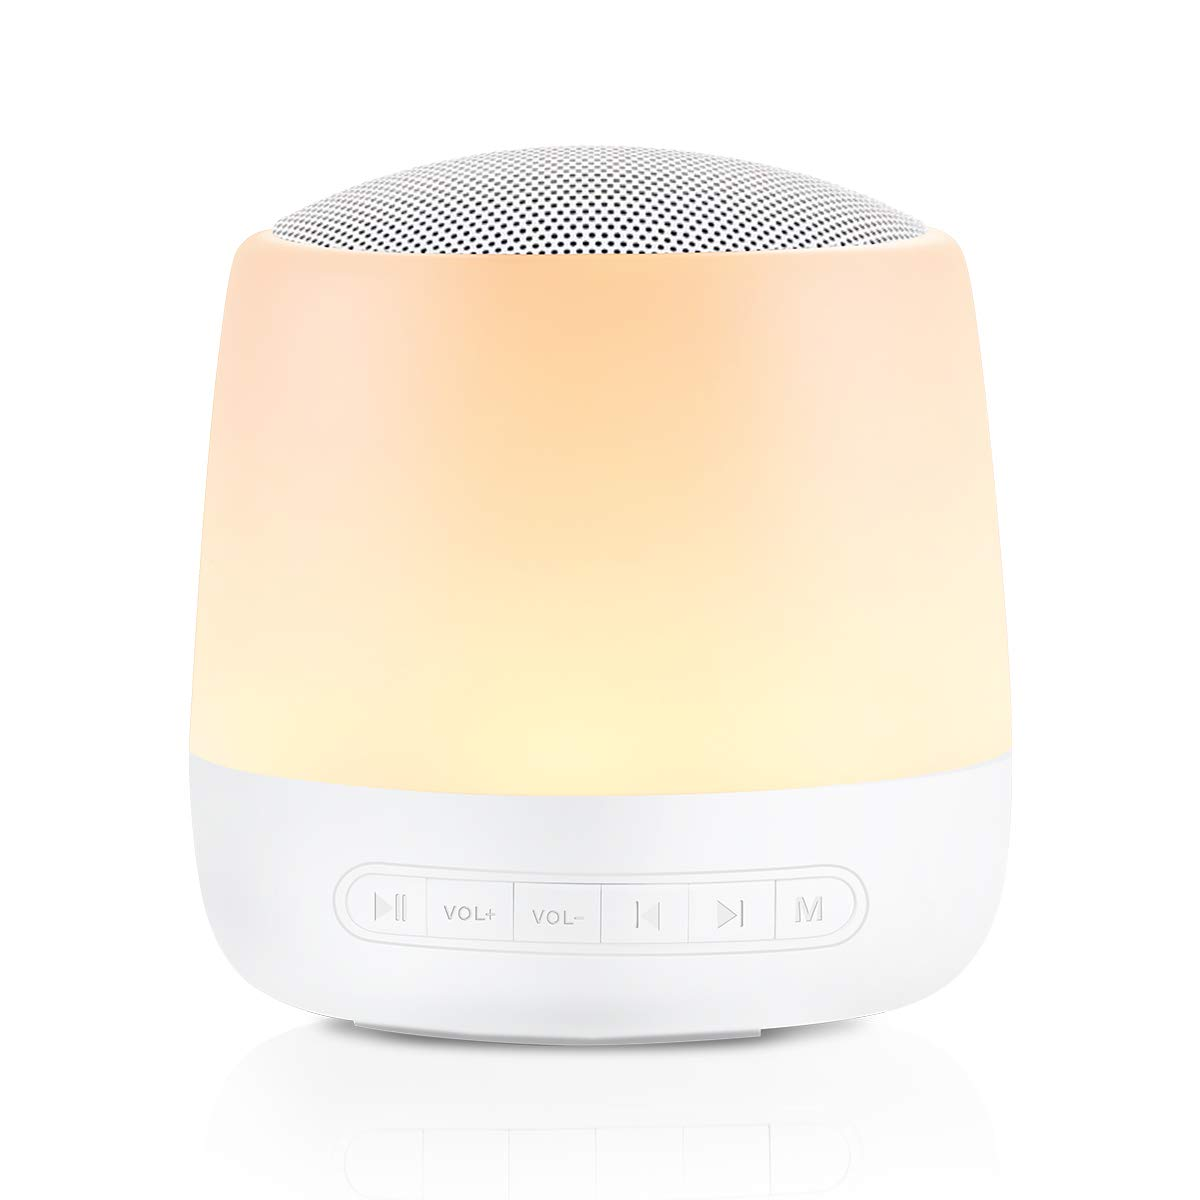 White Noise Machine Sleep Sound Machine for Baby Kid Adult with 28 Non-Looping Soothing Sounds Night Light USB Rechargeable Timer & Memory Feature Noise Machine for SleepingUse in Home Office Travel